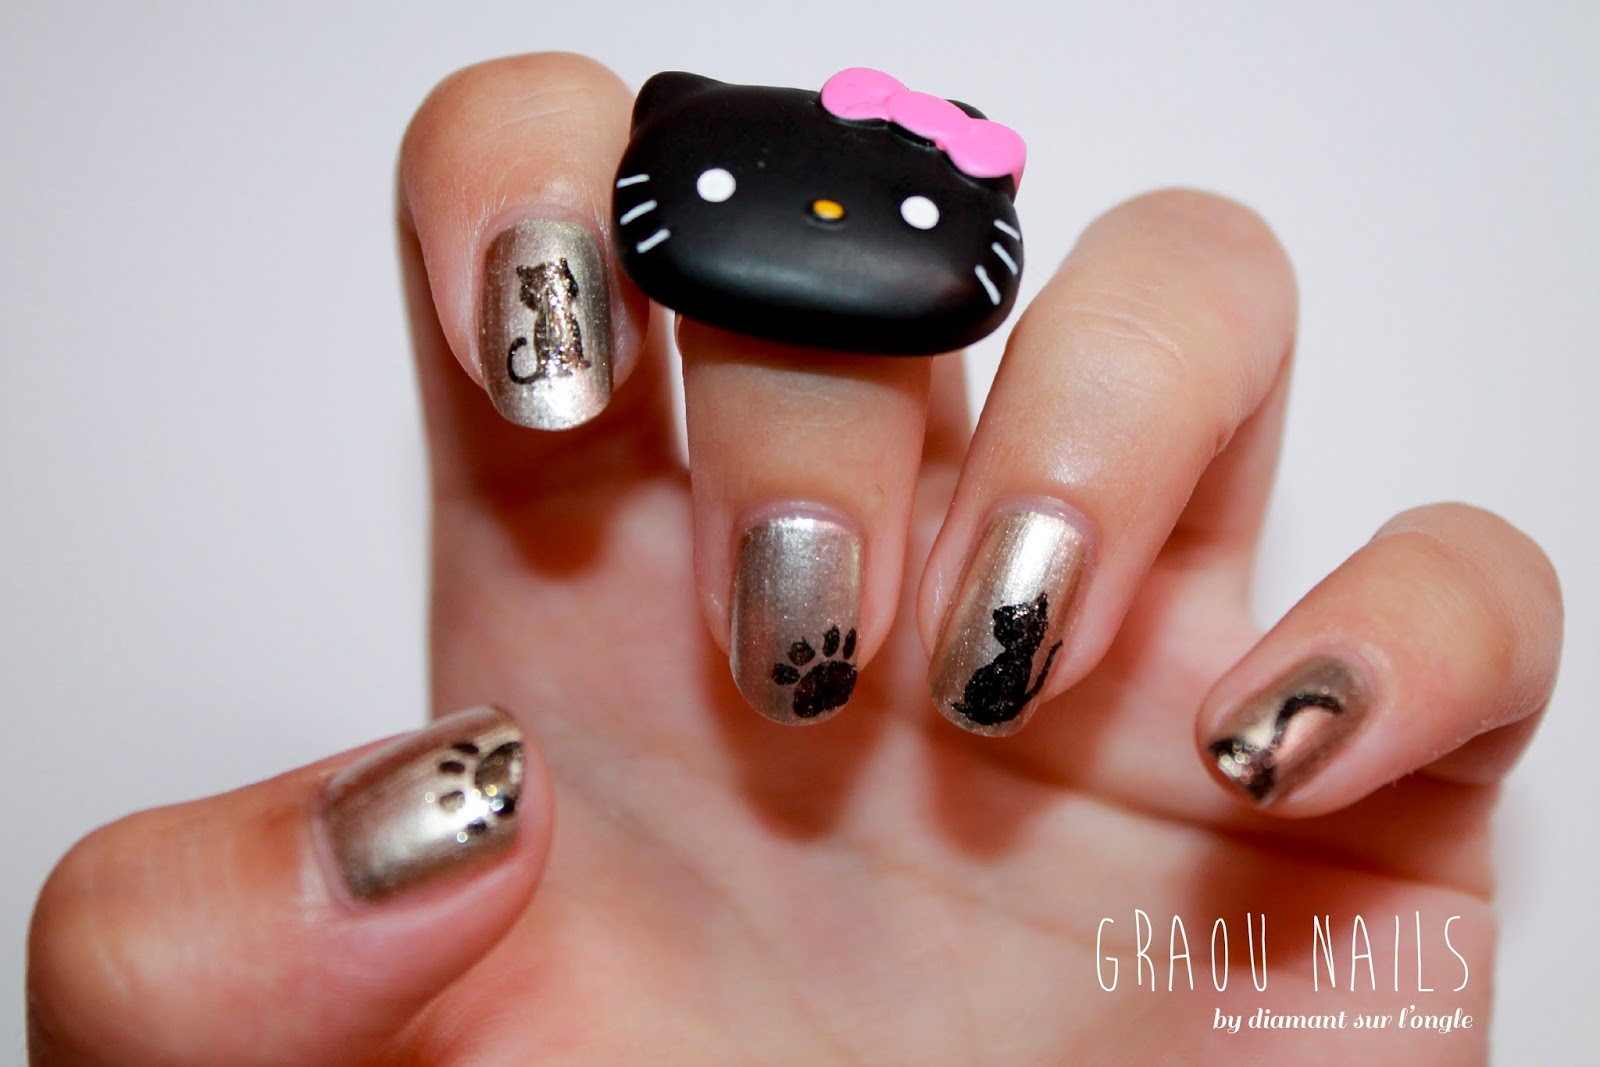 http://diamantsurlongle.blogspot.fr/2013/08/graou-nailstorming.html